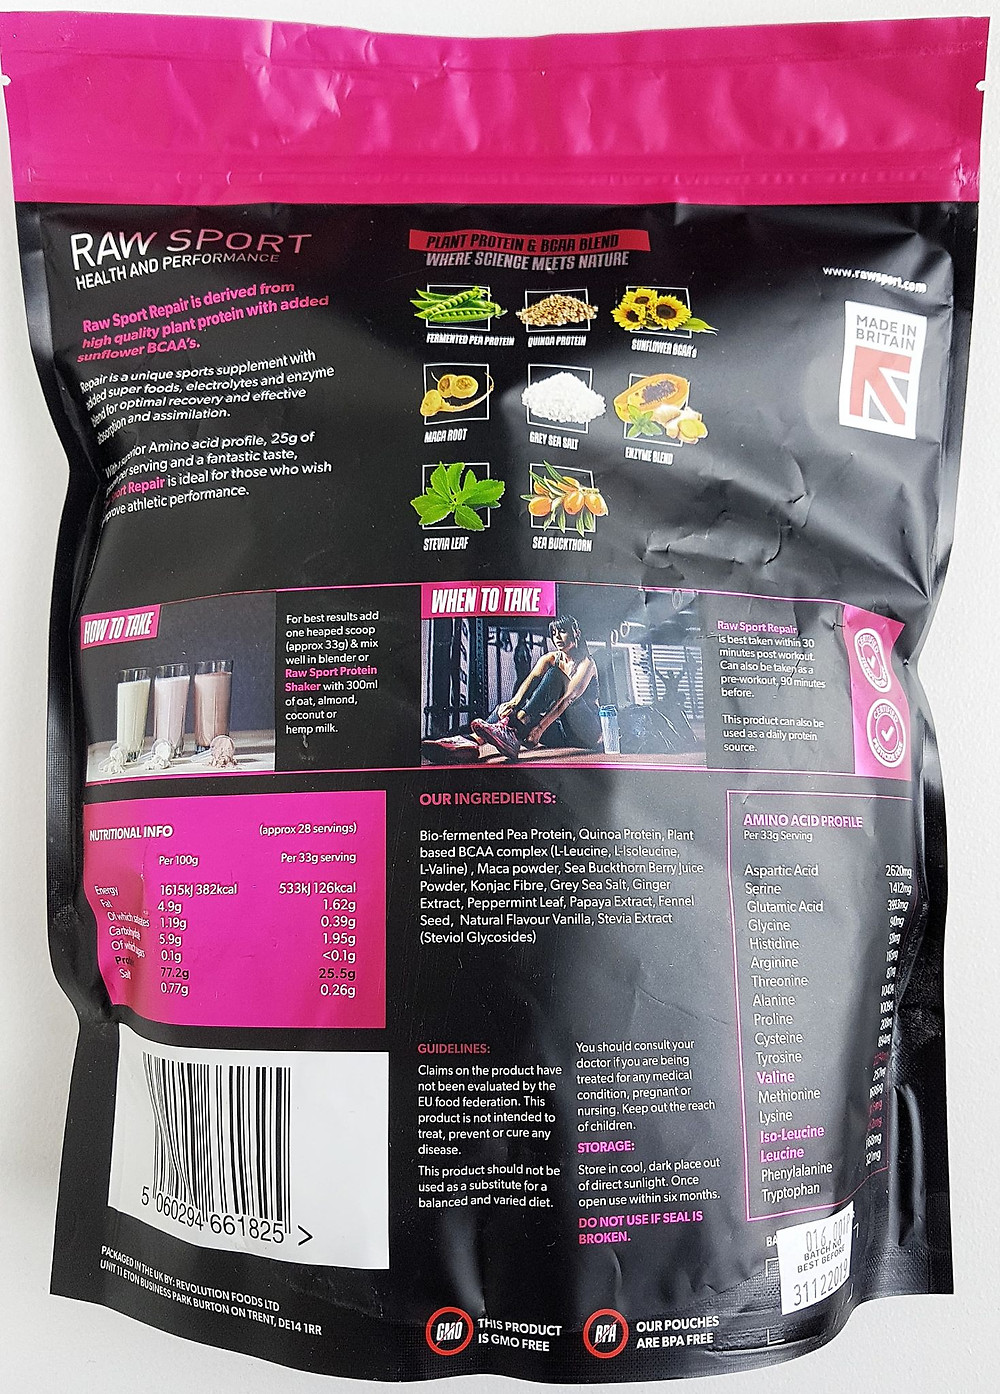 Raw Sport Female Repair Protein Vanilla Nutritional Values & Ingredients